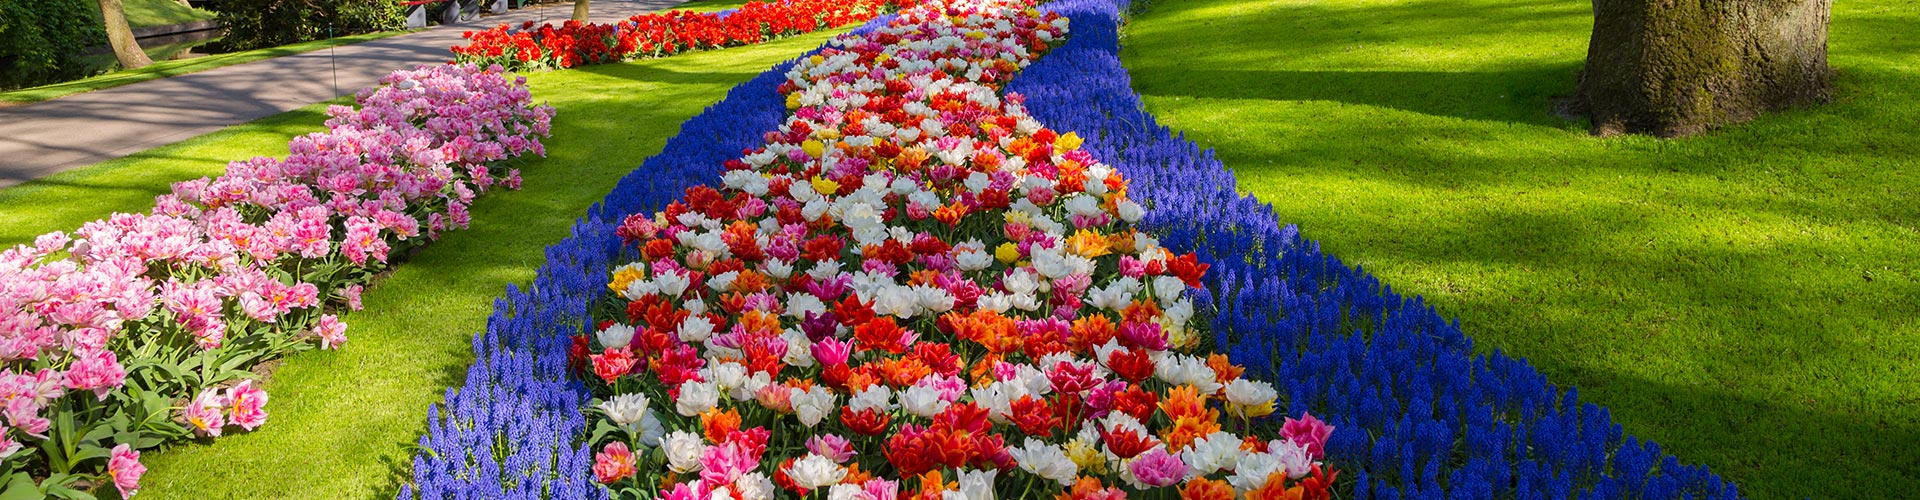 colorful seasonal flowers in a garden